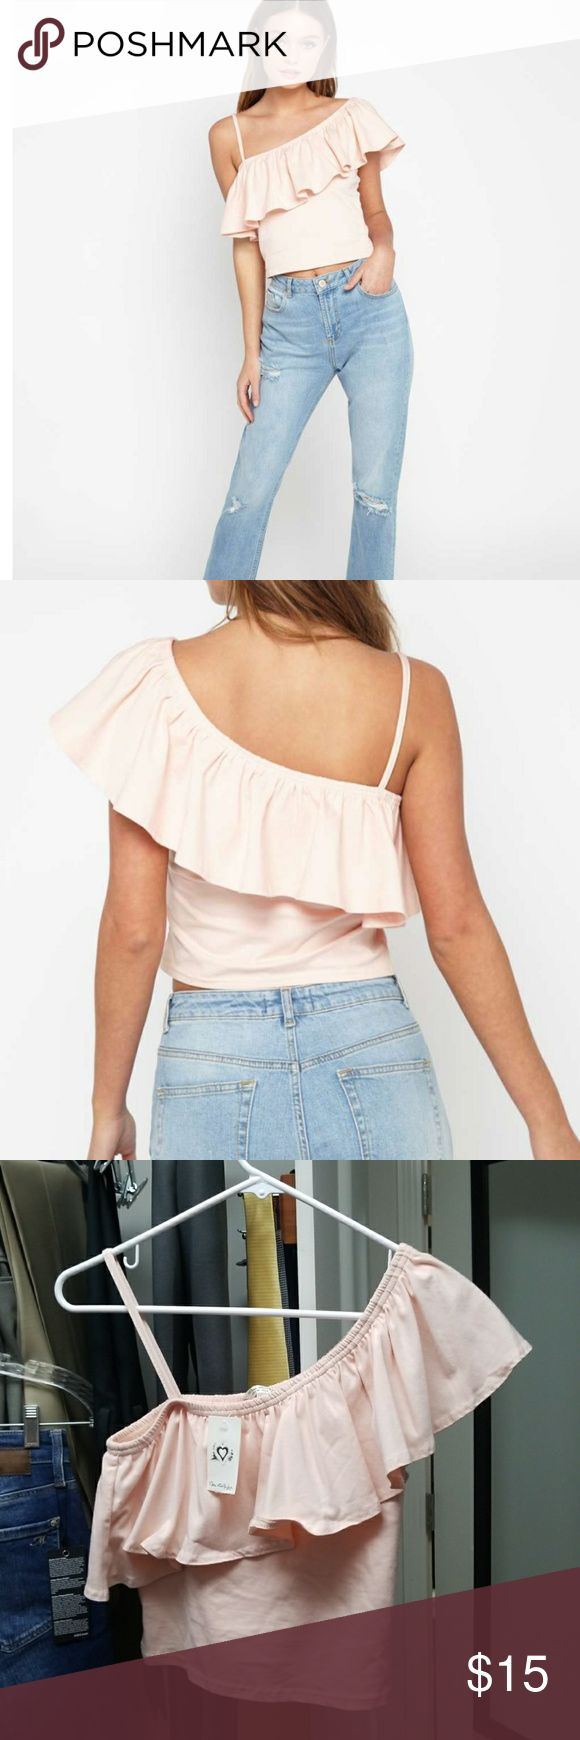 Miss Selfridge One Shoulder Frill Crop Top Nude one shoulder crop top with frill detail.  94% Cotton, 6% ElastaneMachine washable Miss Selfridge Tops Crop Tops